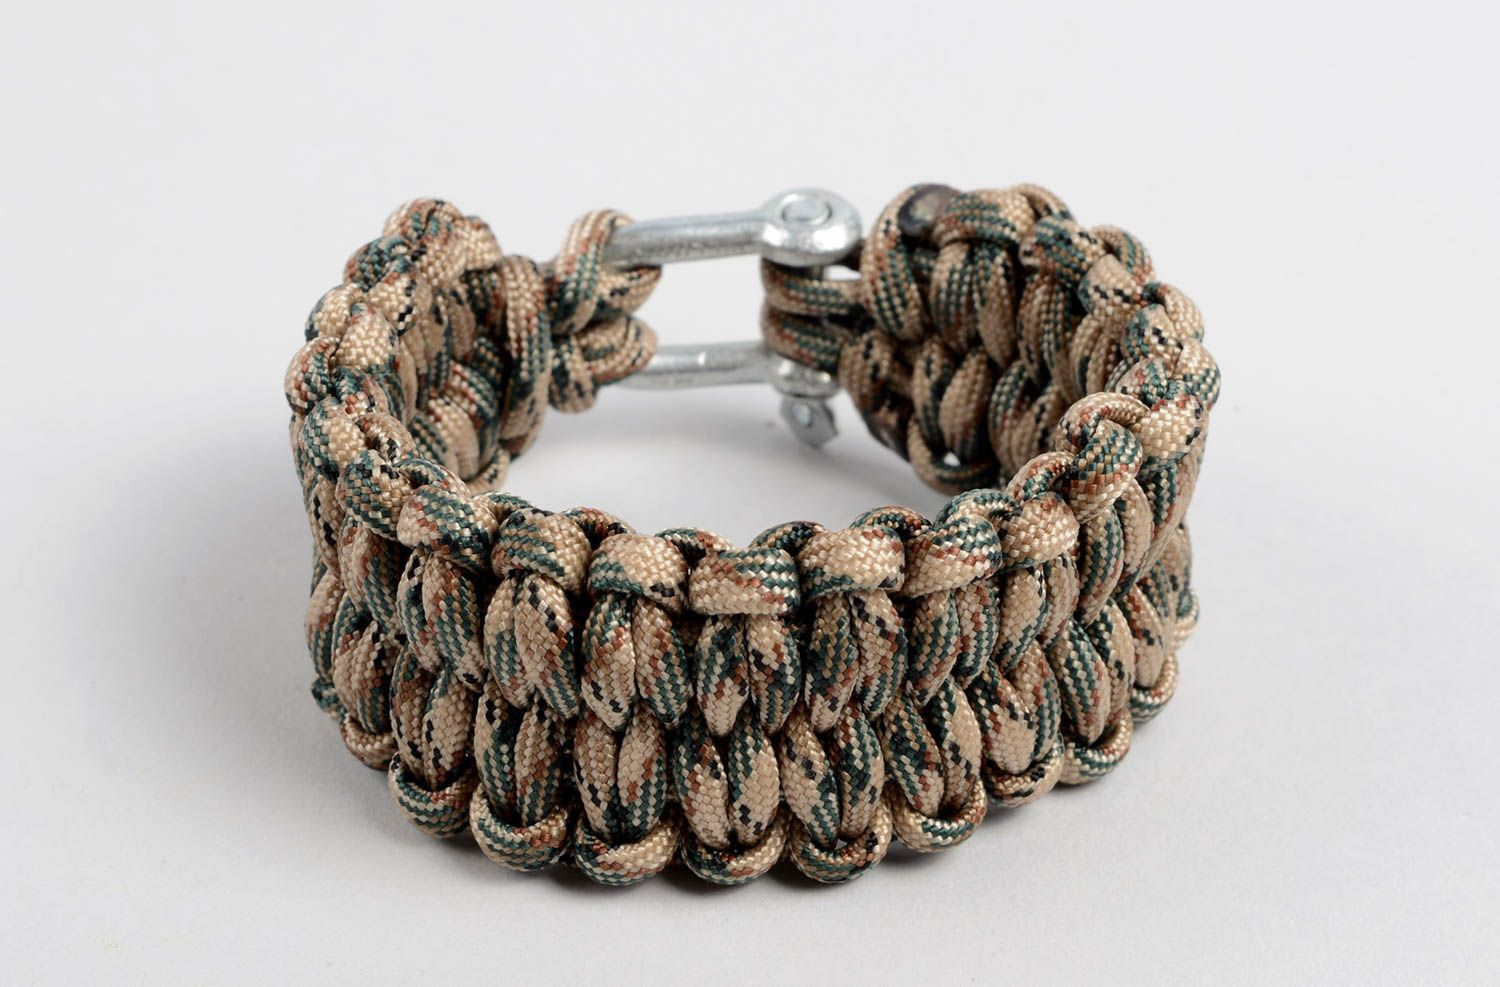 Textile Bracelets Beautiful Handmade Bracelet Designs Woven Cord Jewelry Madeheart